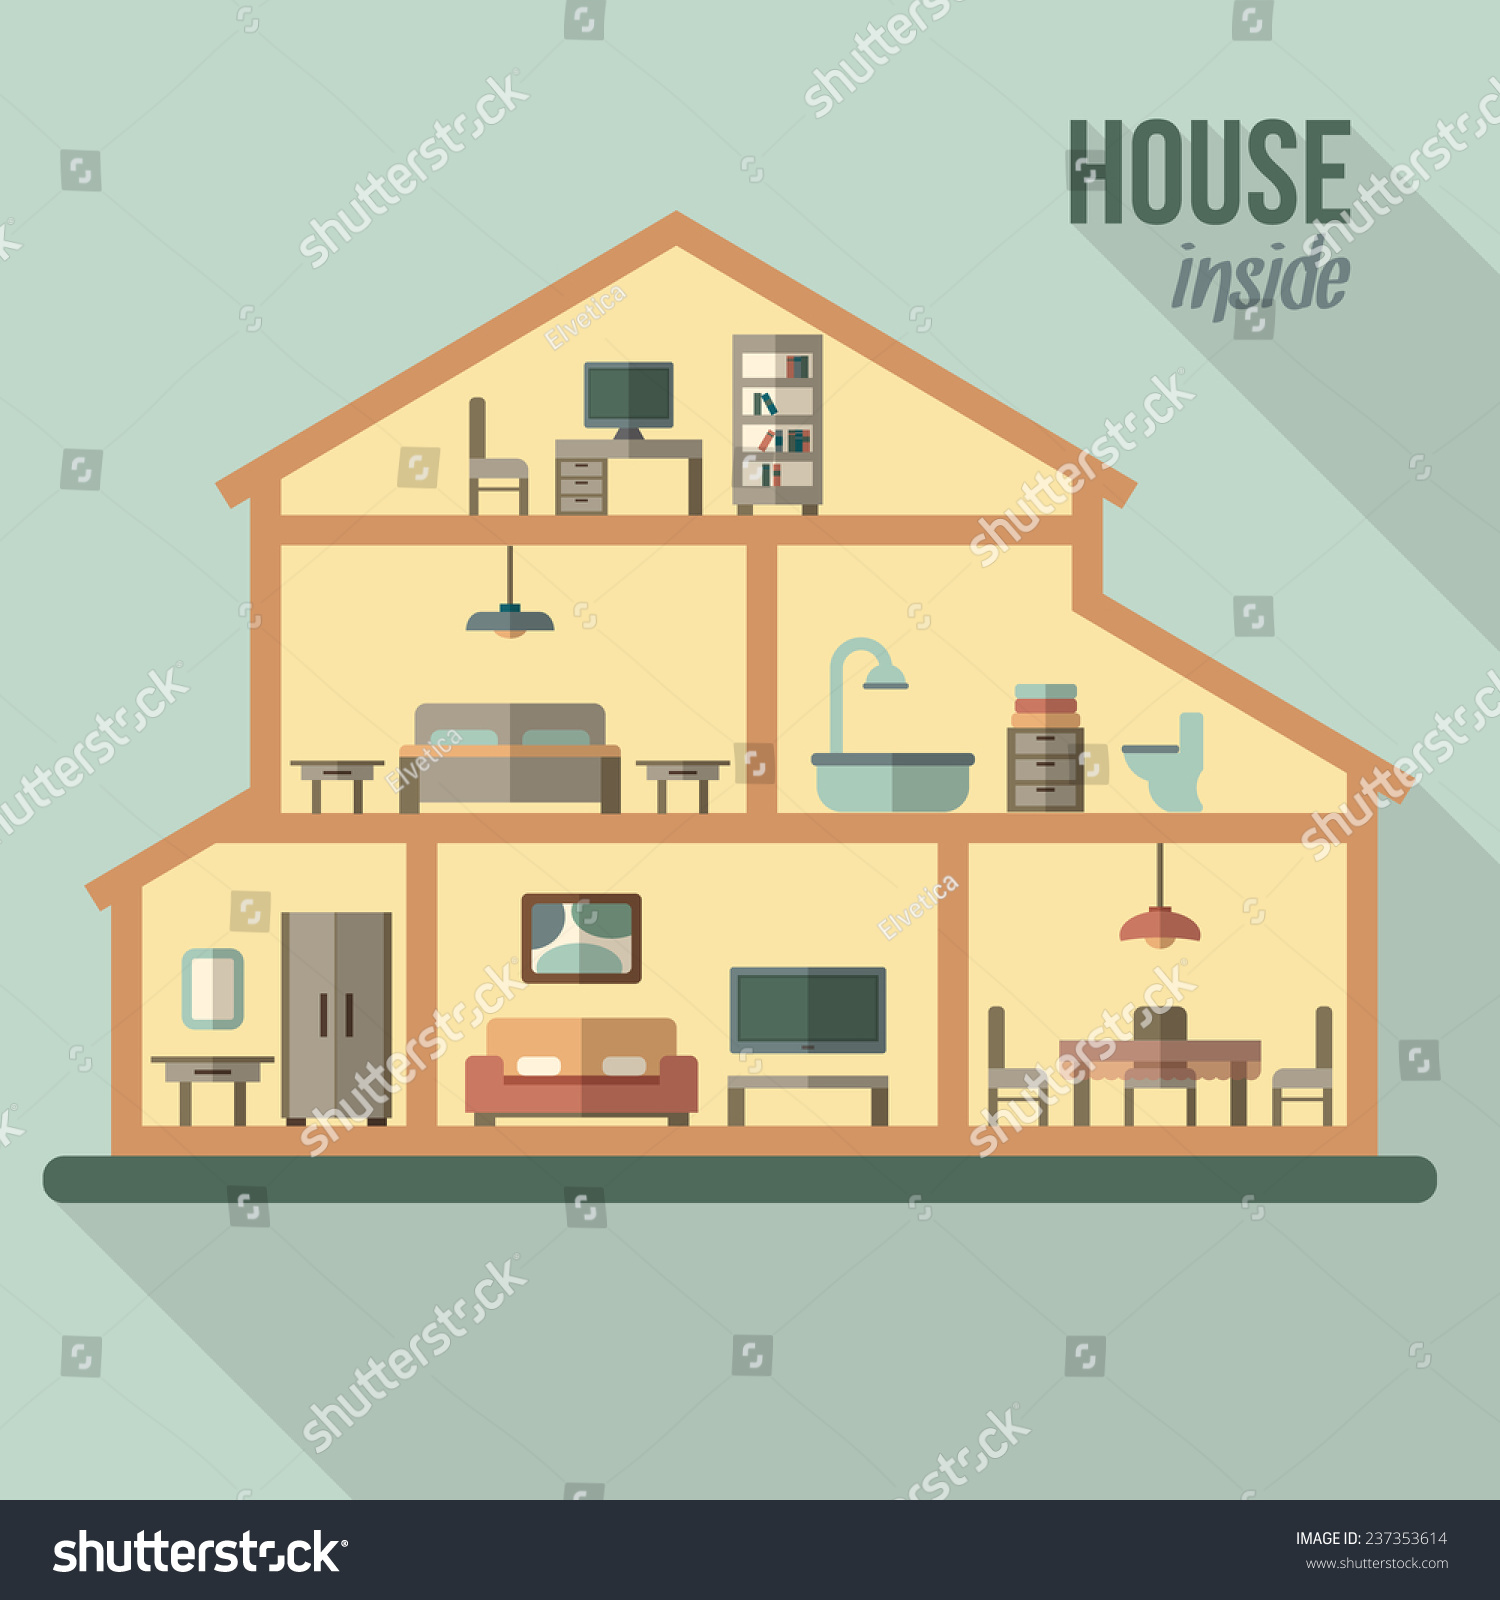 House cut detailed modern house interior stock vector for House inside images